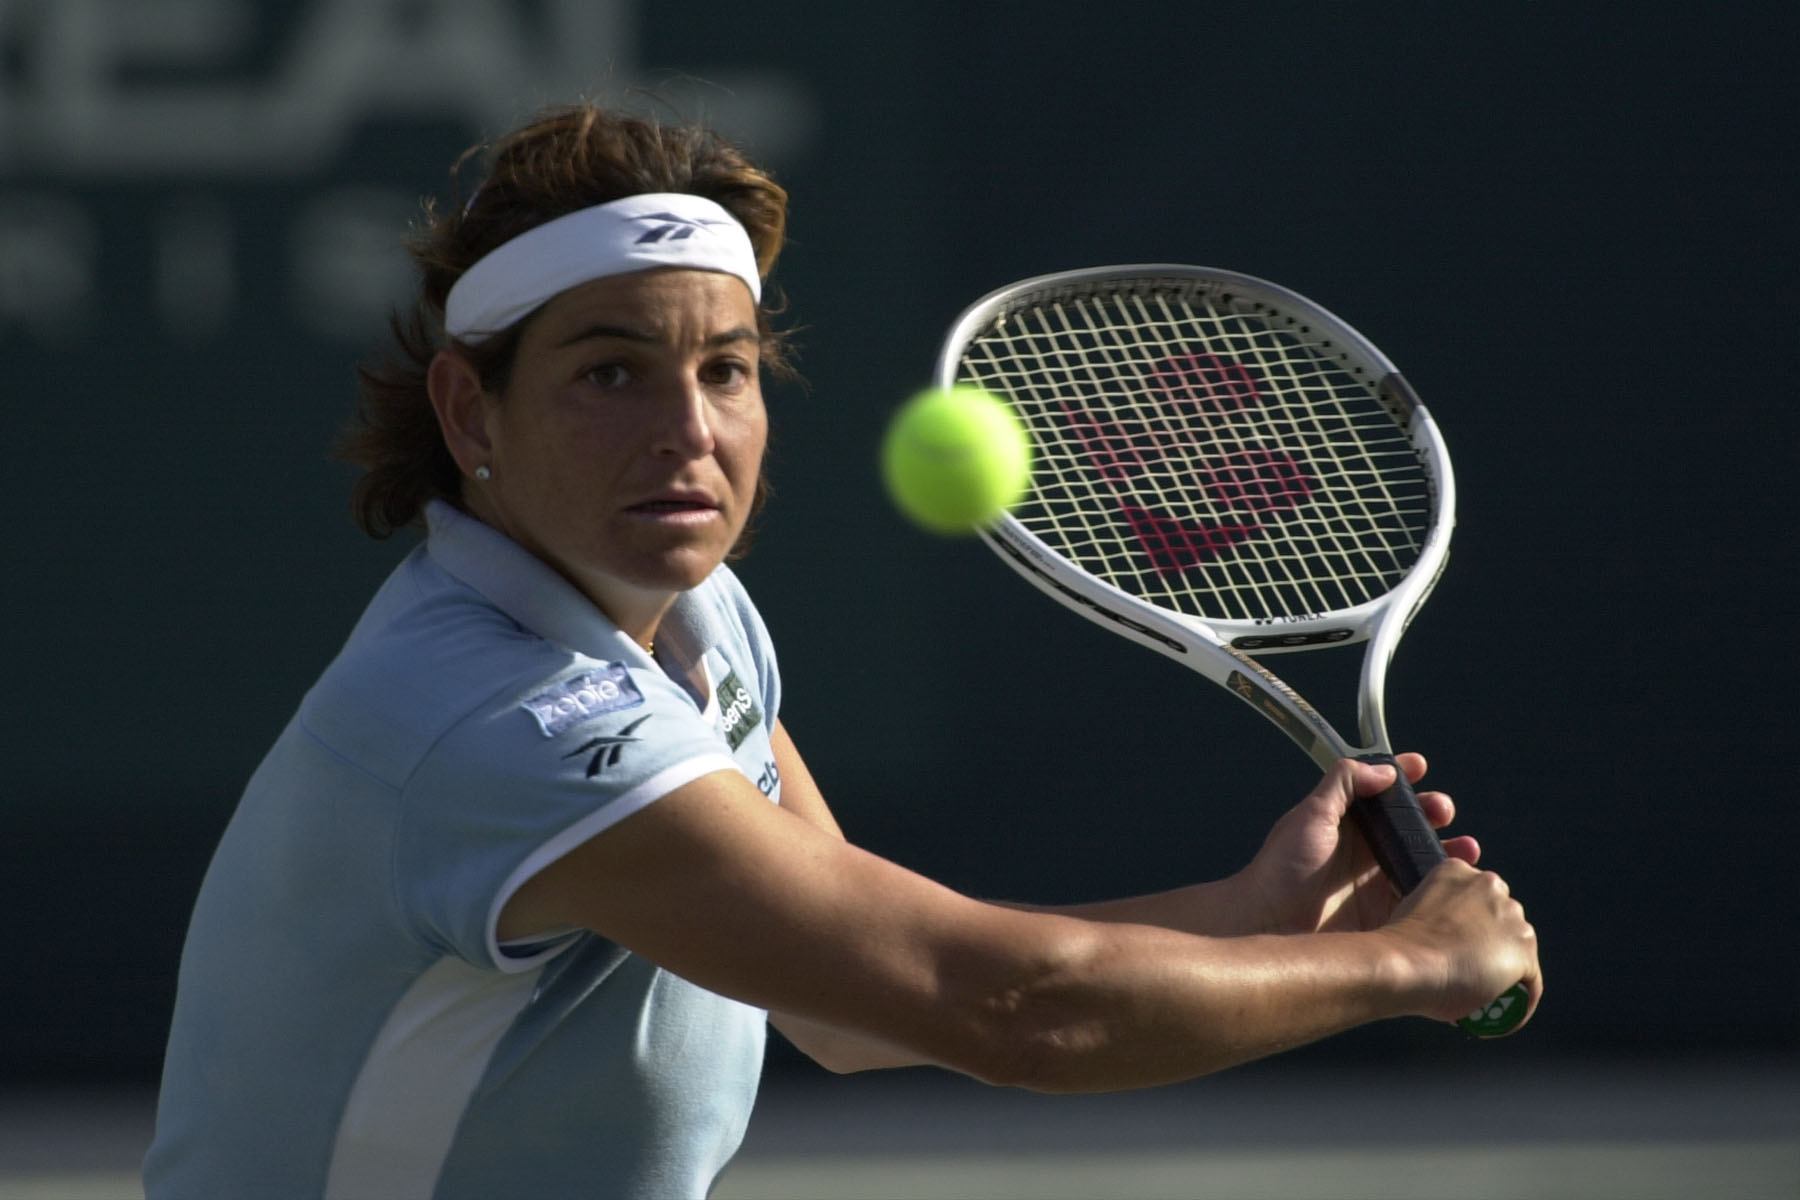 17  Apr 2001:  Aranxta Sanchez Vicario of Spain returns a shot to Andrea Glass of Germany and Iva Majoli of Croatia while playing doubles with Jennifer Capriati during the first round of the Family Circle Cup at the Tennis Center at Daniel Island in Charl